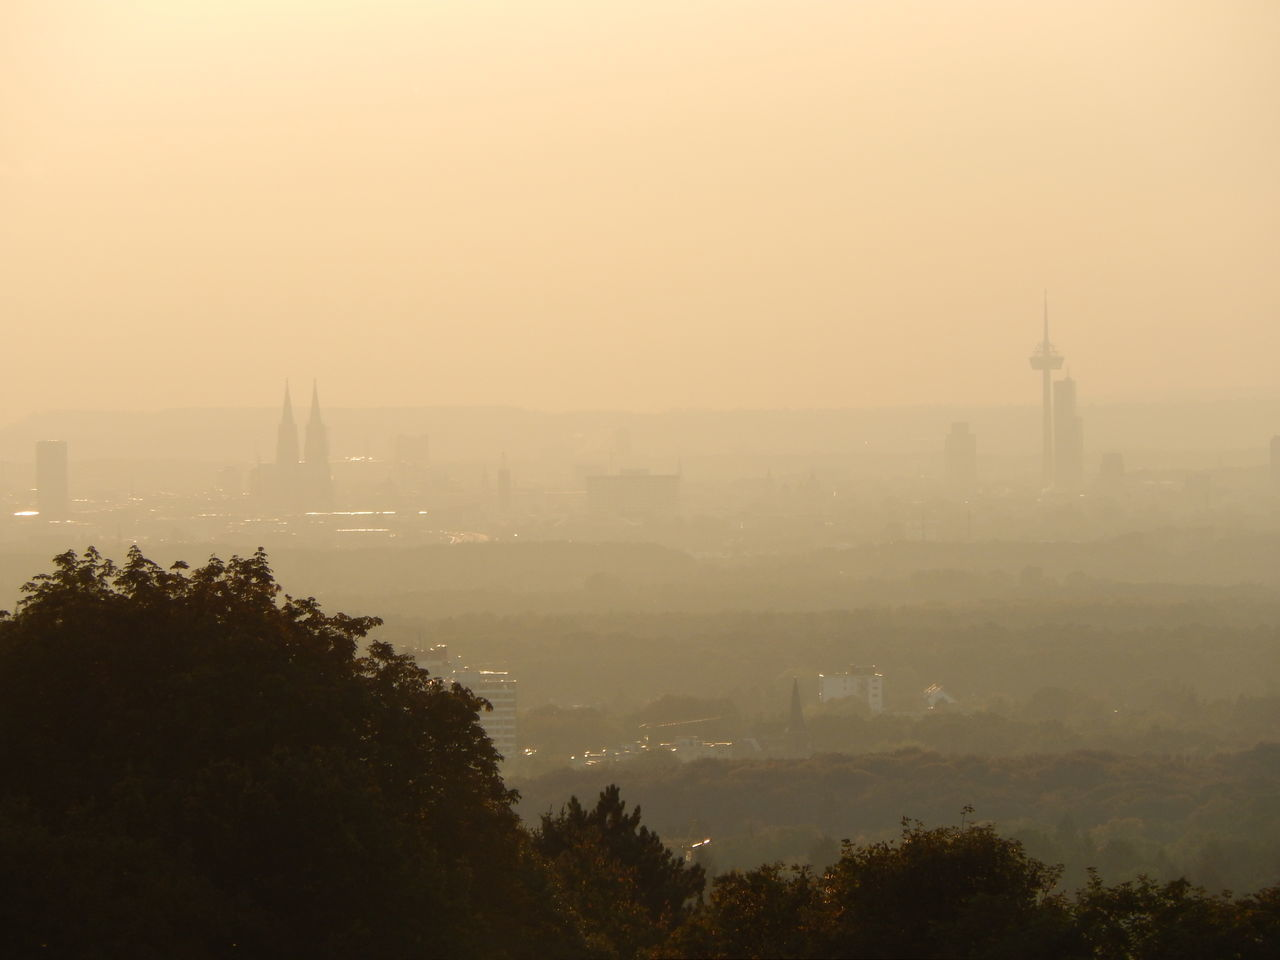 Köln under smog Capital Cities  City City City Against The Light City Life City Under Clouds City Under Smoke Cityscape Cologne Cologne , Köln,  Cologne Cathedral Fog Foggy Köln Kölner Dom Modern No People Outdoors Residential District Sky Smog Smoggy Sky Tower Urban Skyline Weather